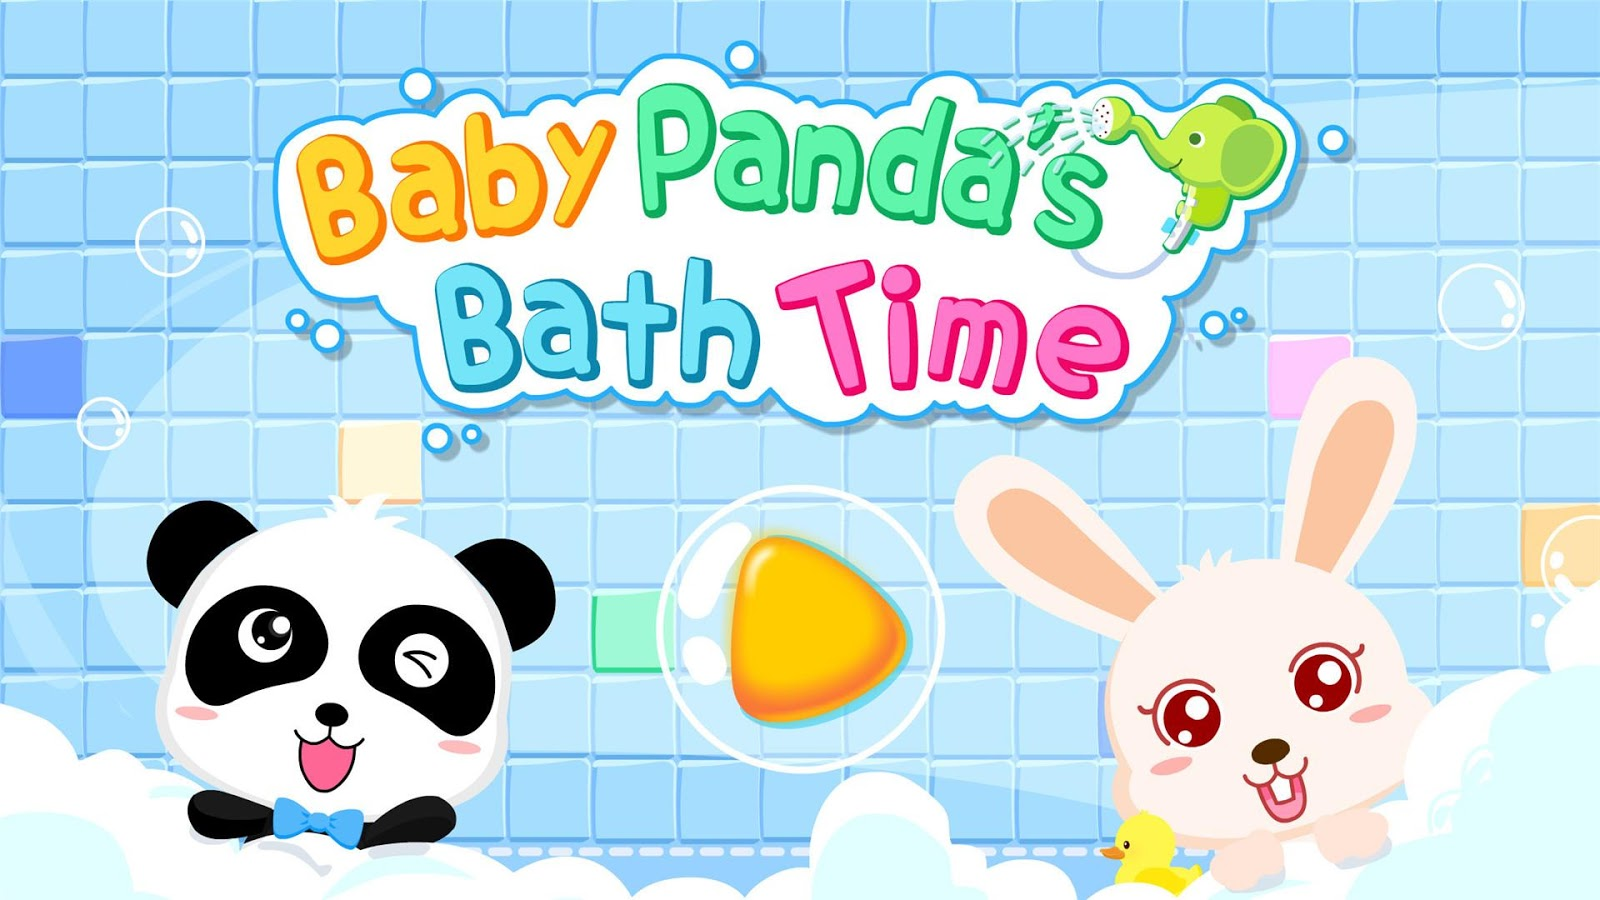 Baby Pandas Bath Time  Android Apps on Google Play